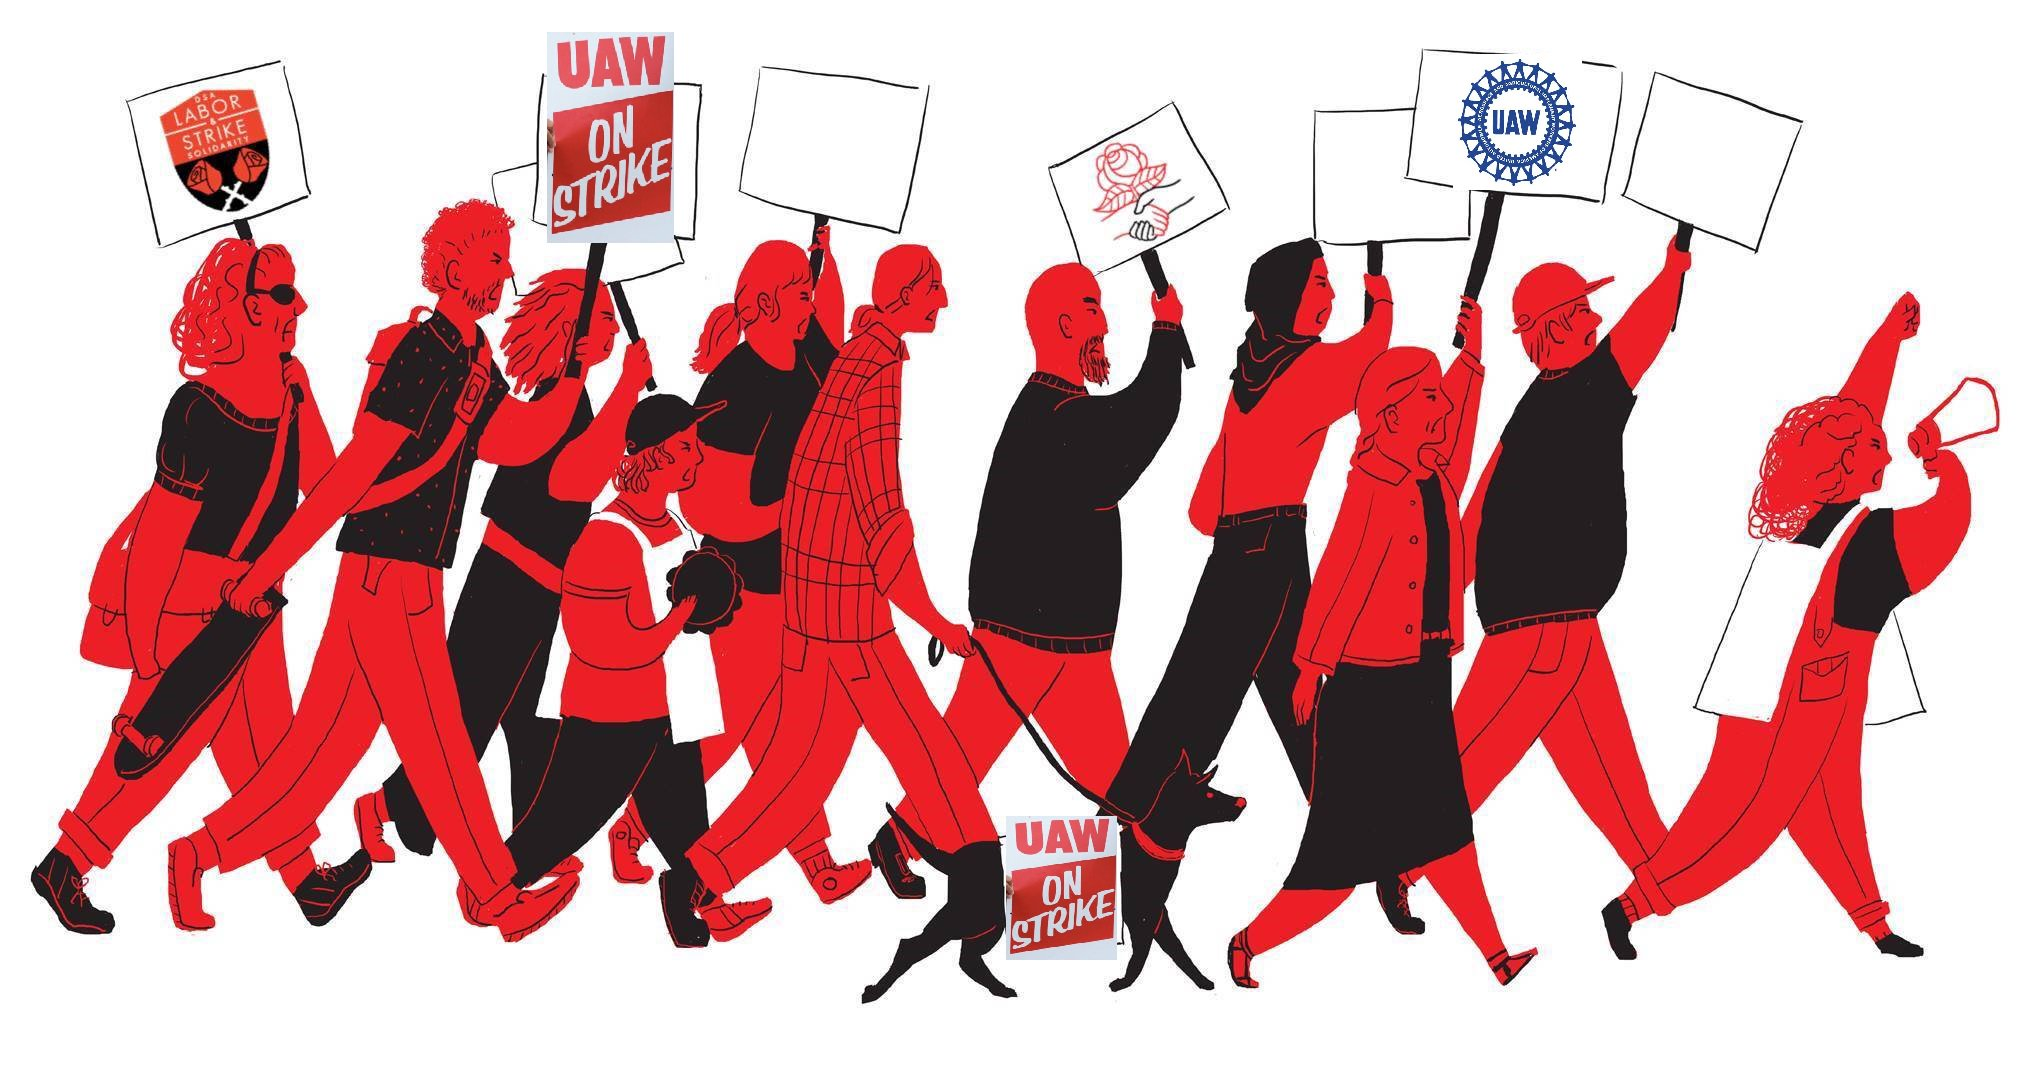 Solidarity with the striking UAW workers! https://t.co/h17w9FoiCP